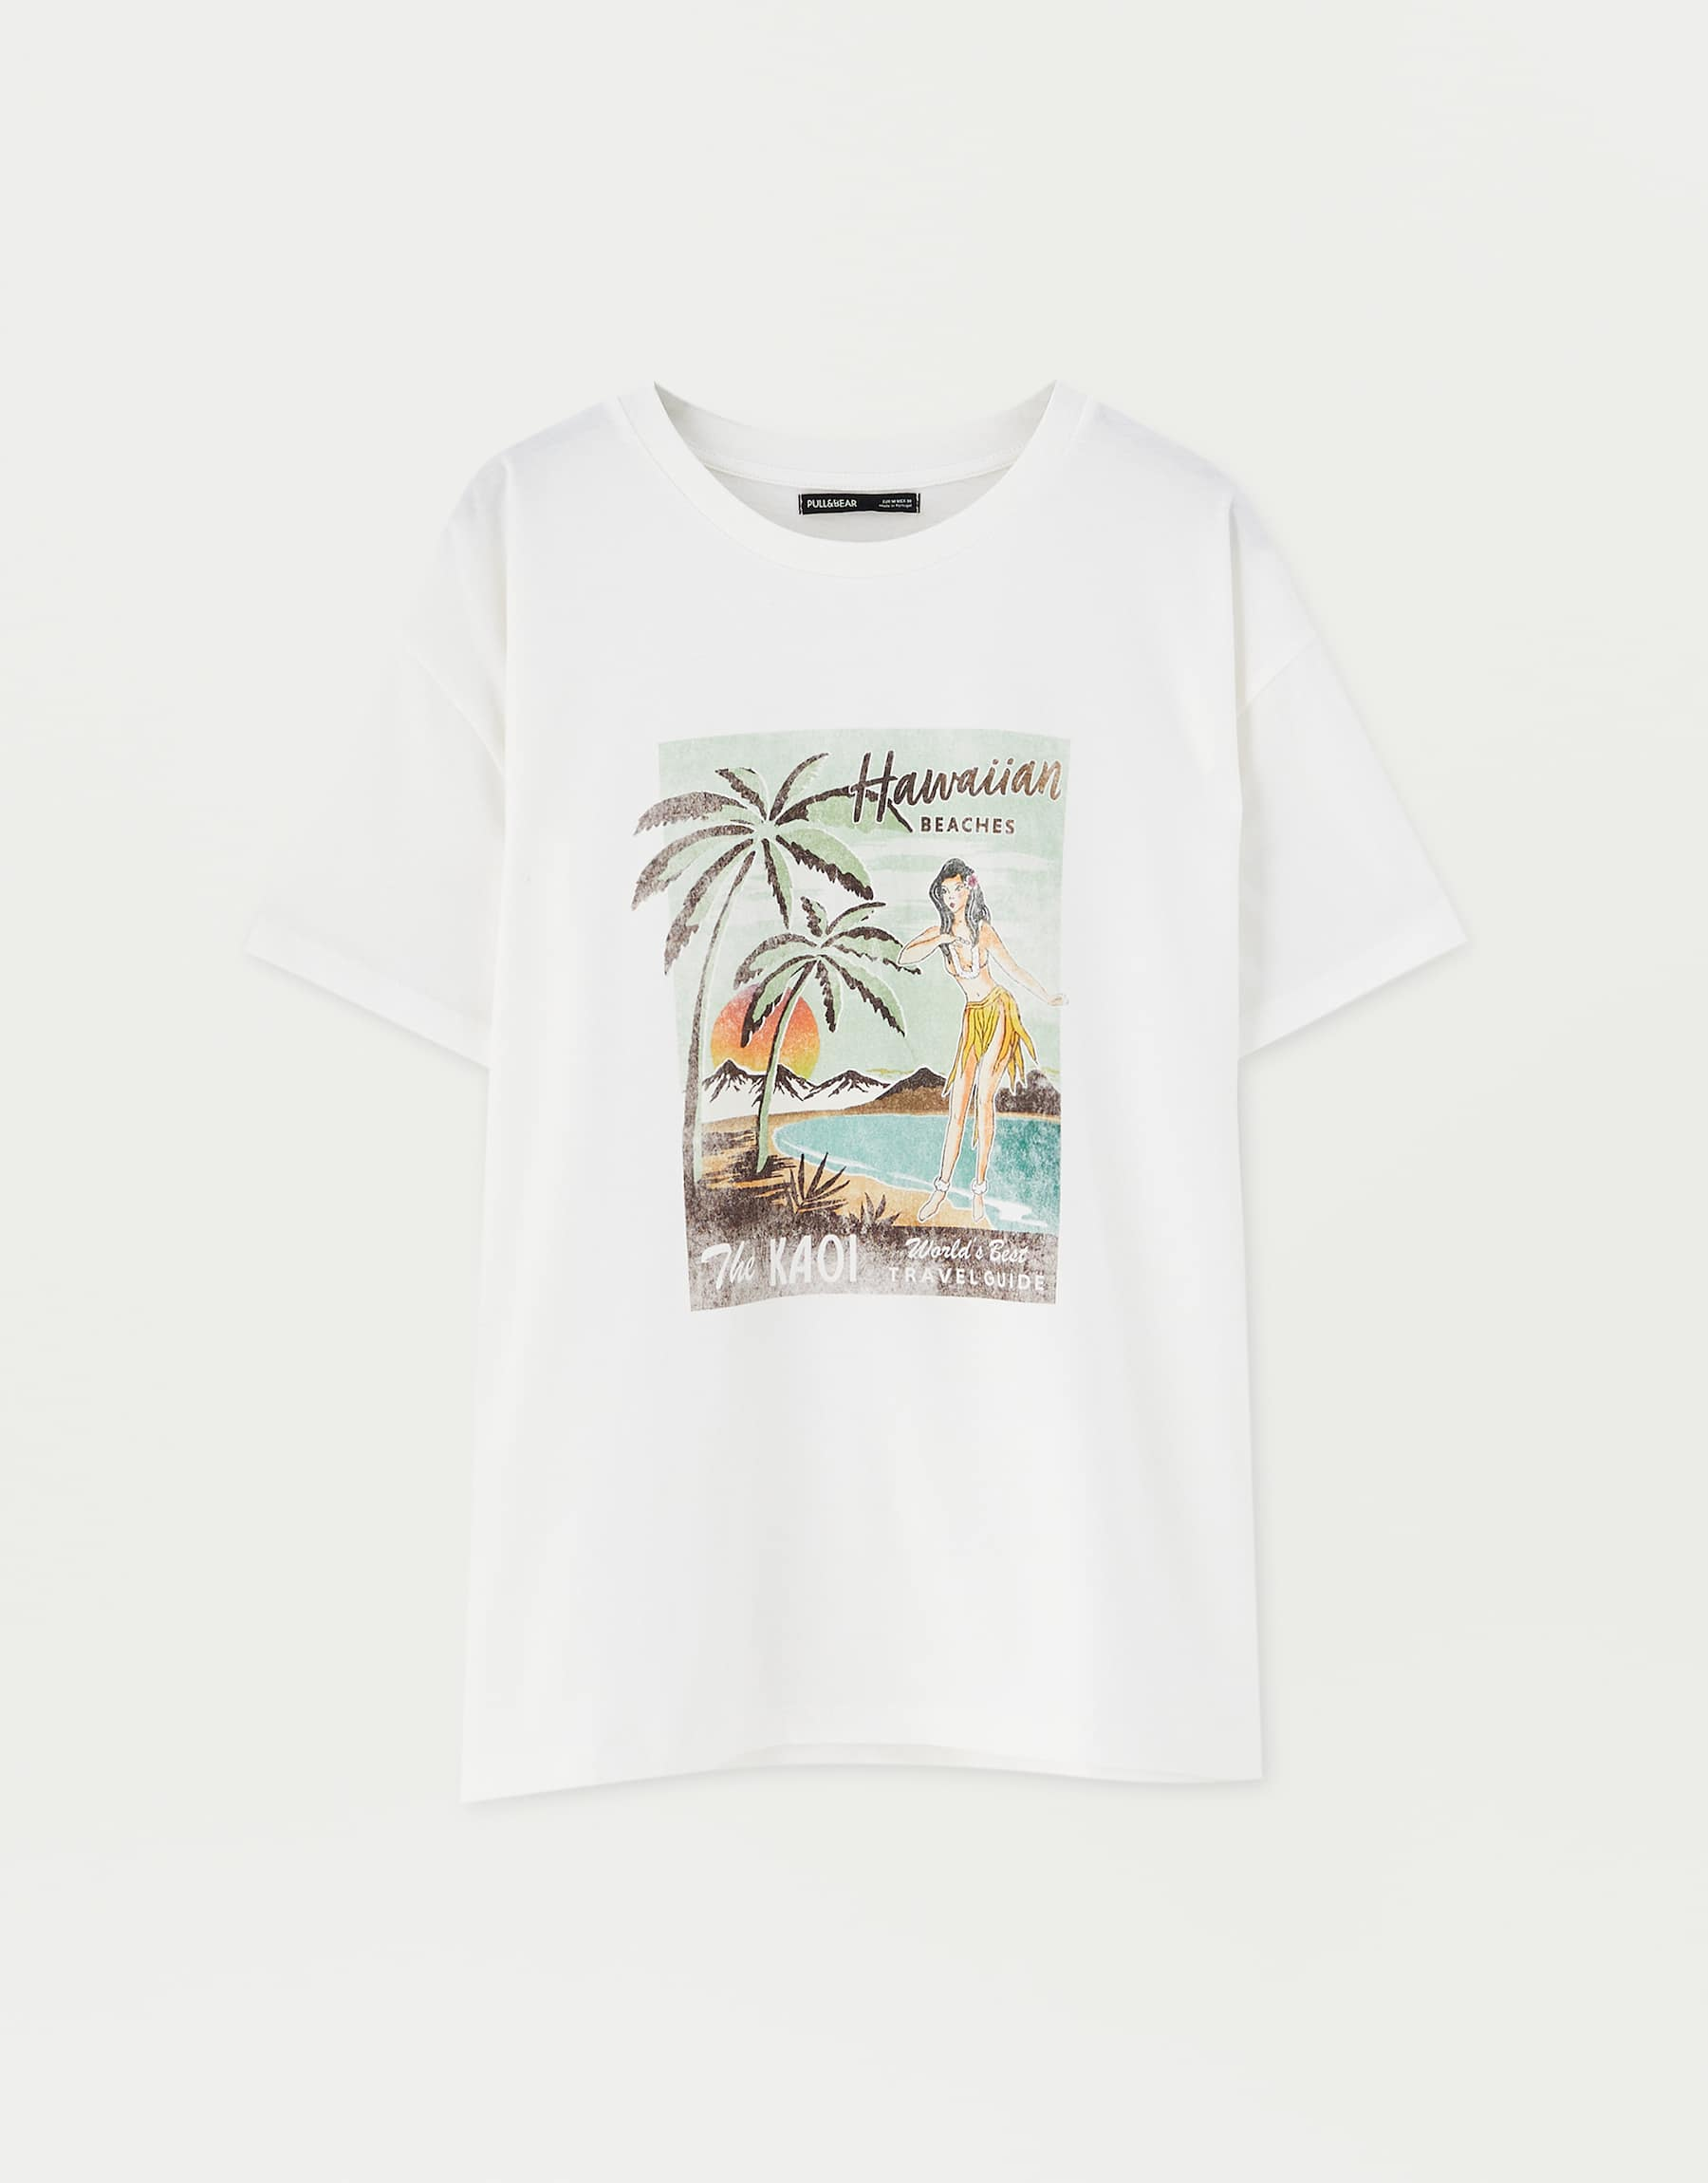 Sadie Sink Hawaiian T-Shirt, $24.90